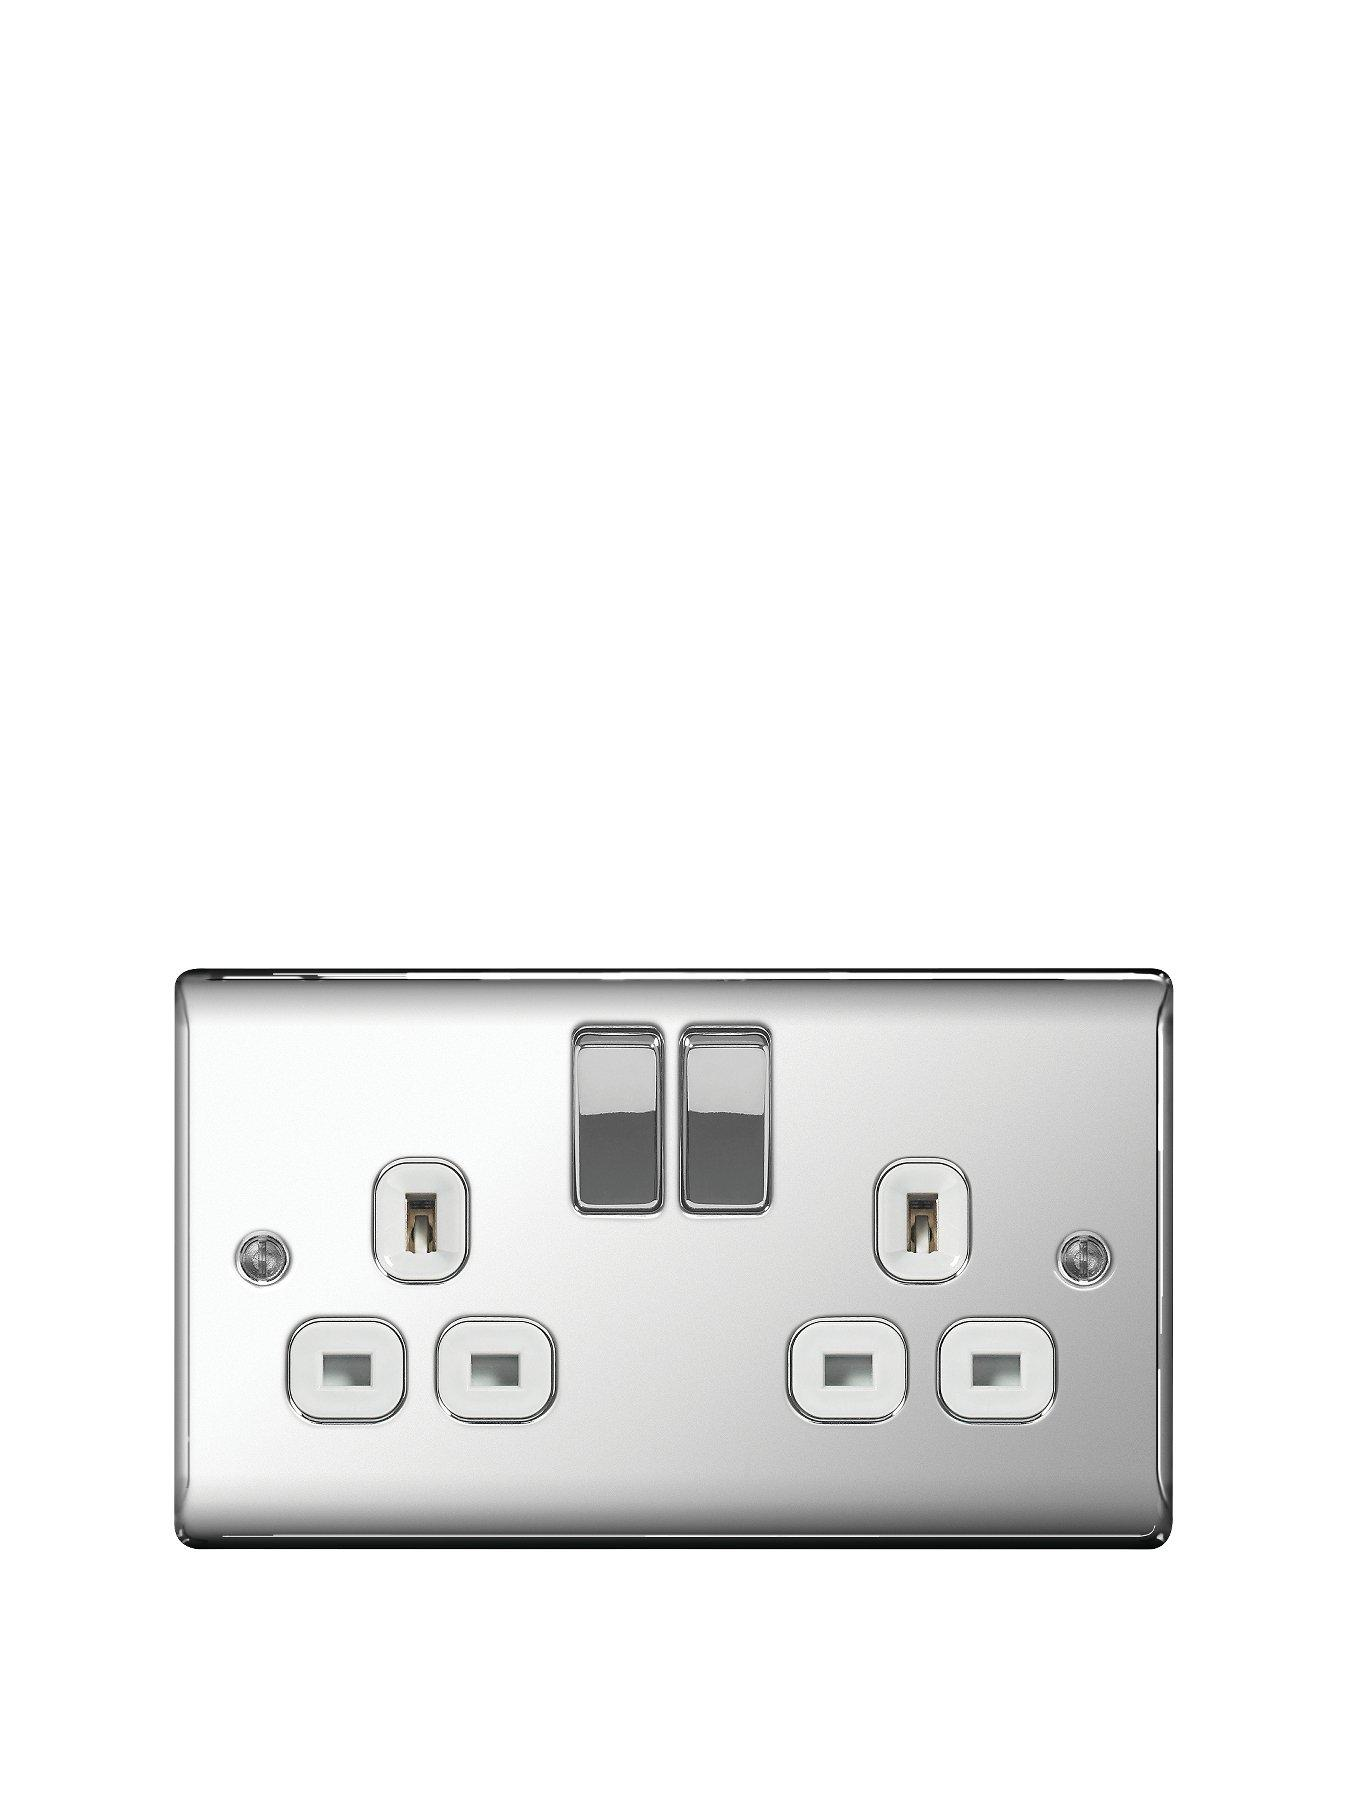 Compare prices for British General Electrical Raised 2G Switched Socket 13 Amp - Polished Chrome